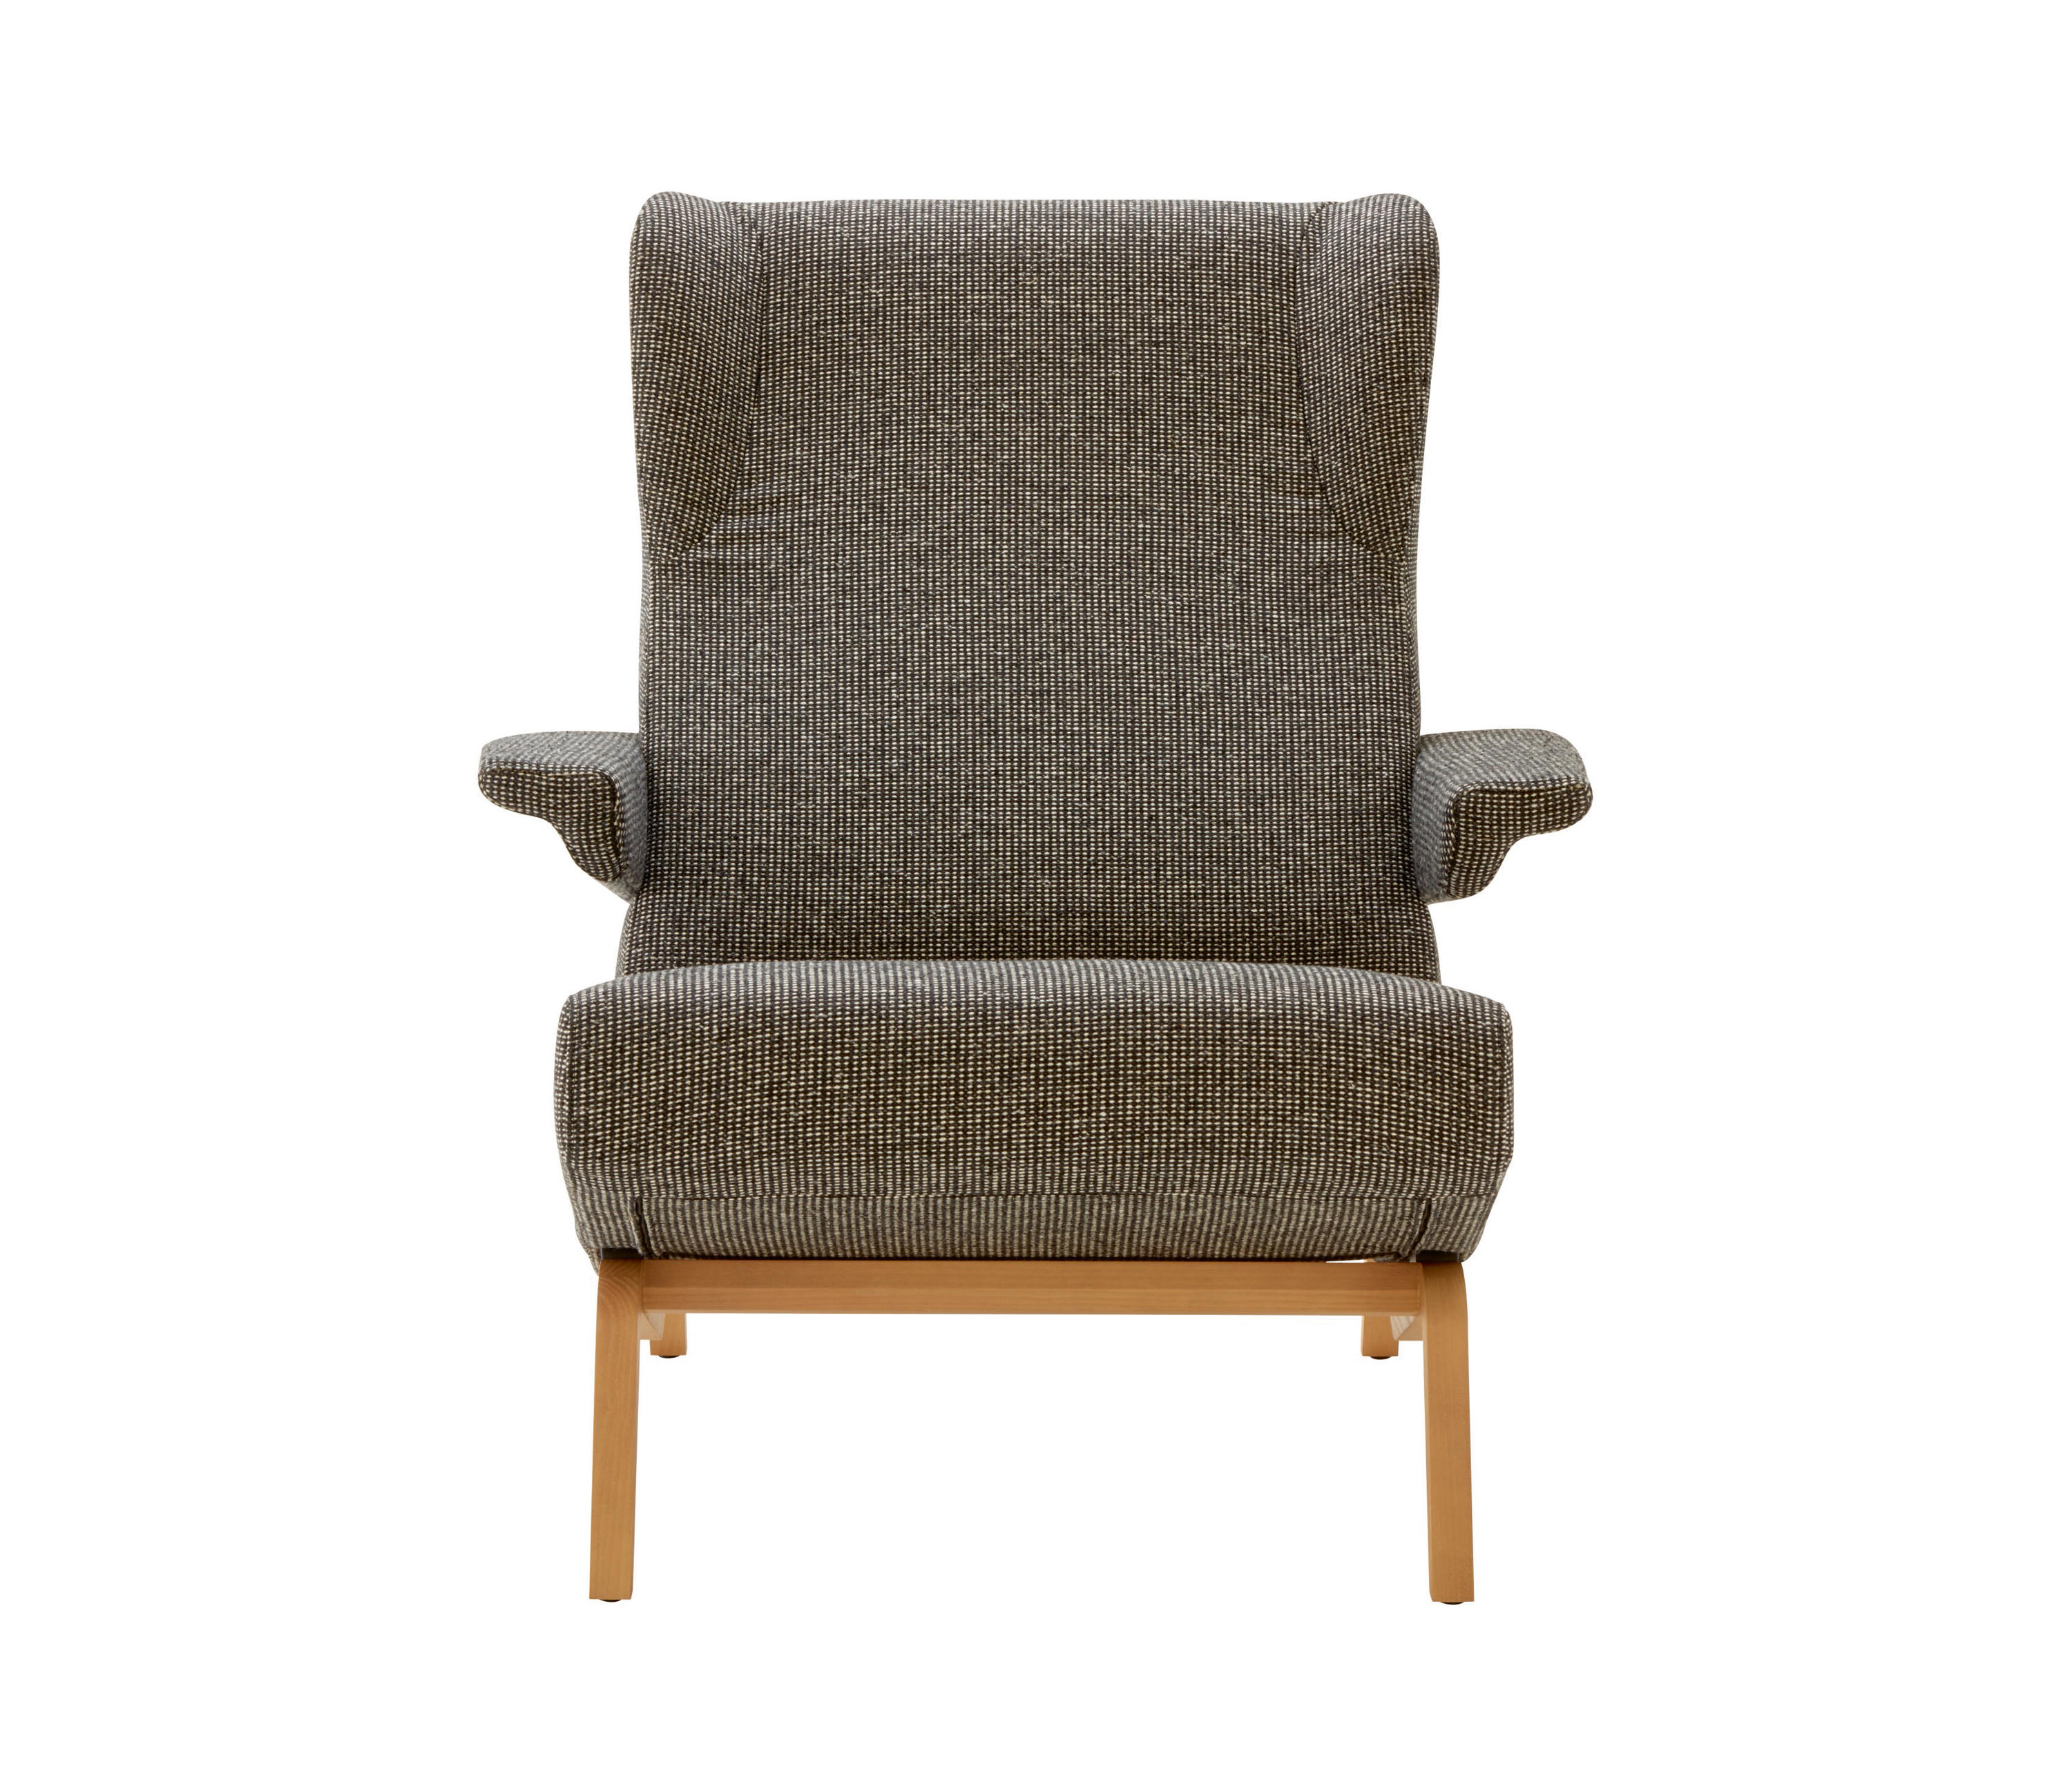 Fauteuil Roset Fauteuil Roset Stunning Fauteuil Fifty Ligne Roset With